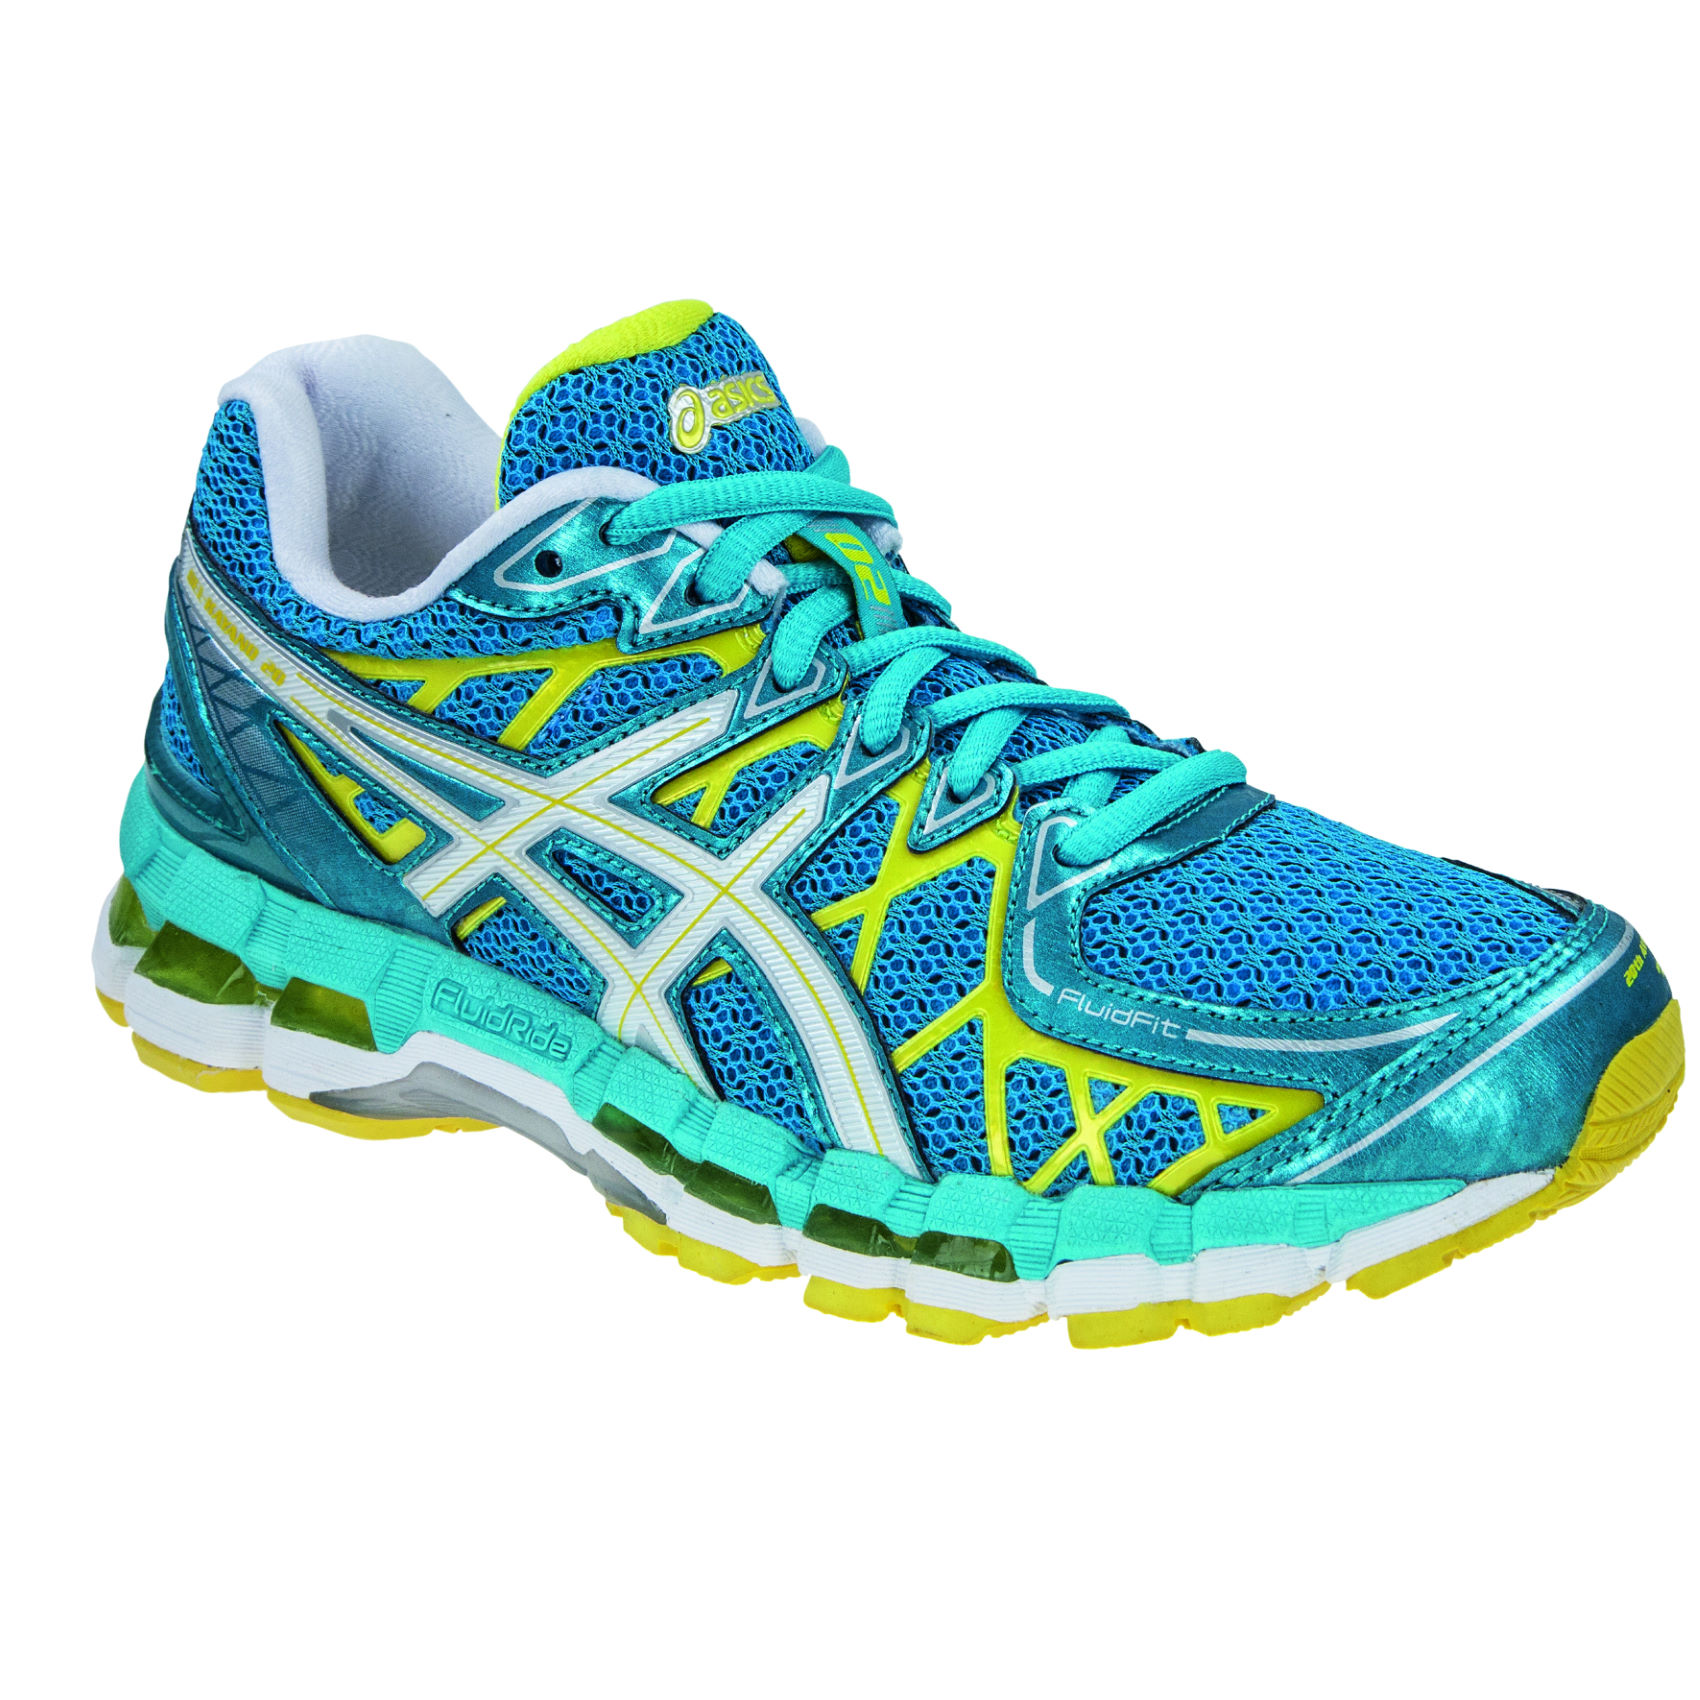 Womens Asics Gel Kayano 20 Trainers Gt 1000